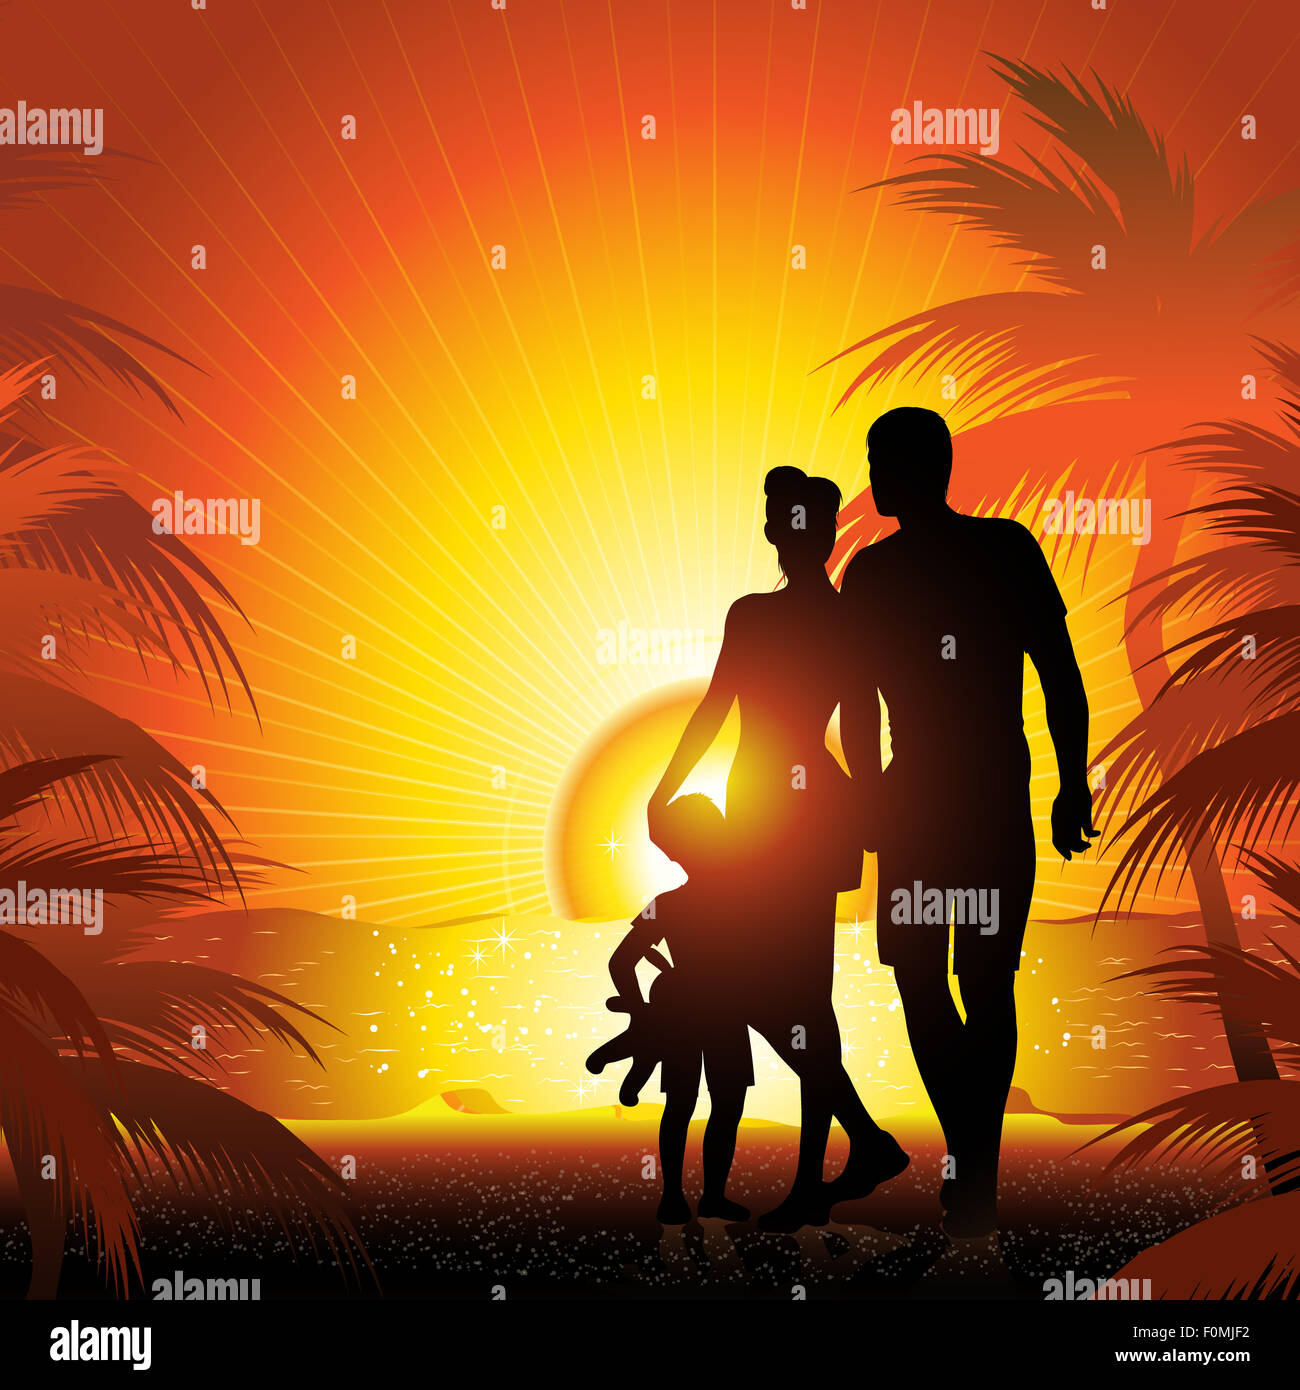 family silhouette on the beach with sunset Stock Photo